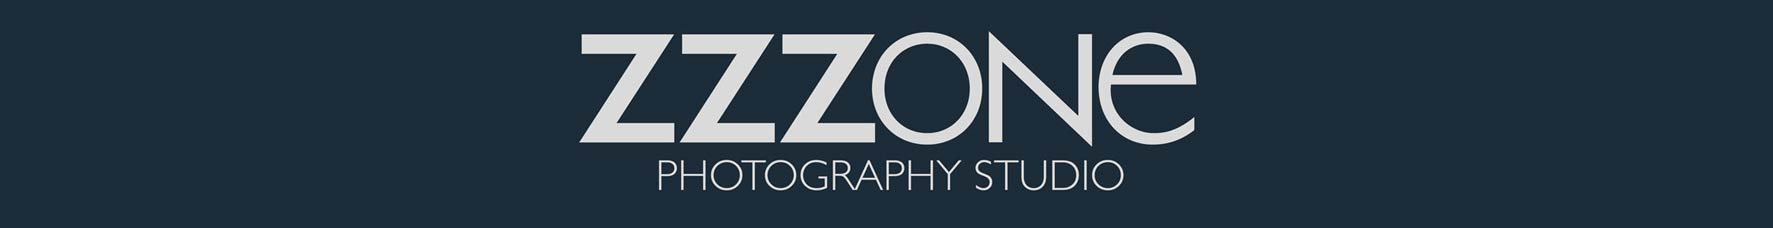 Zzzone-Logo-with-number-and-website---miscellaneous2